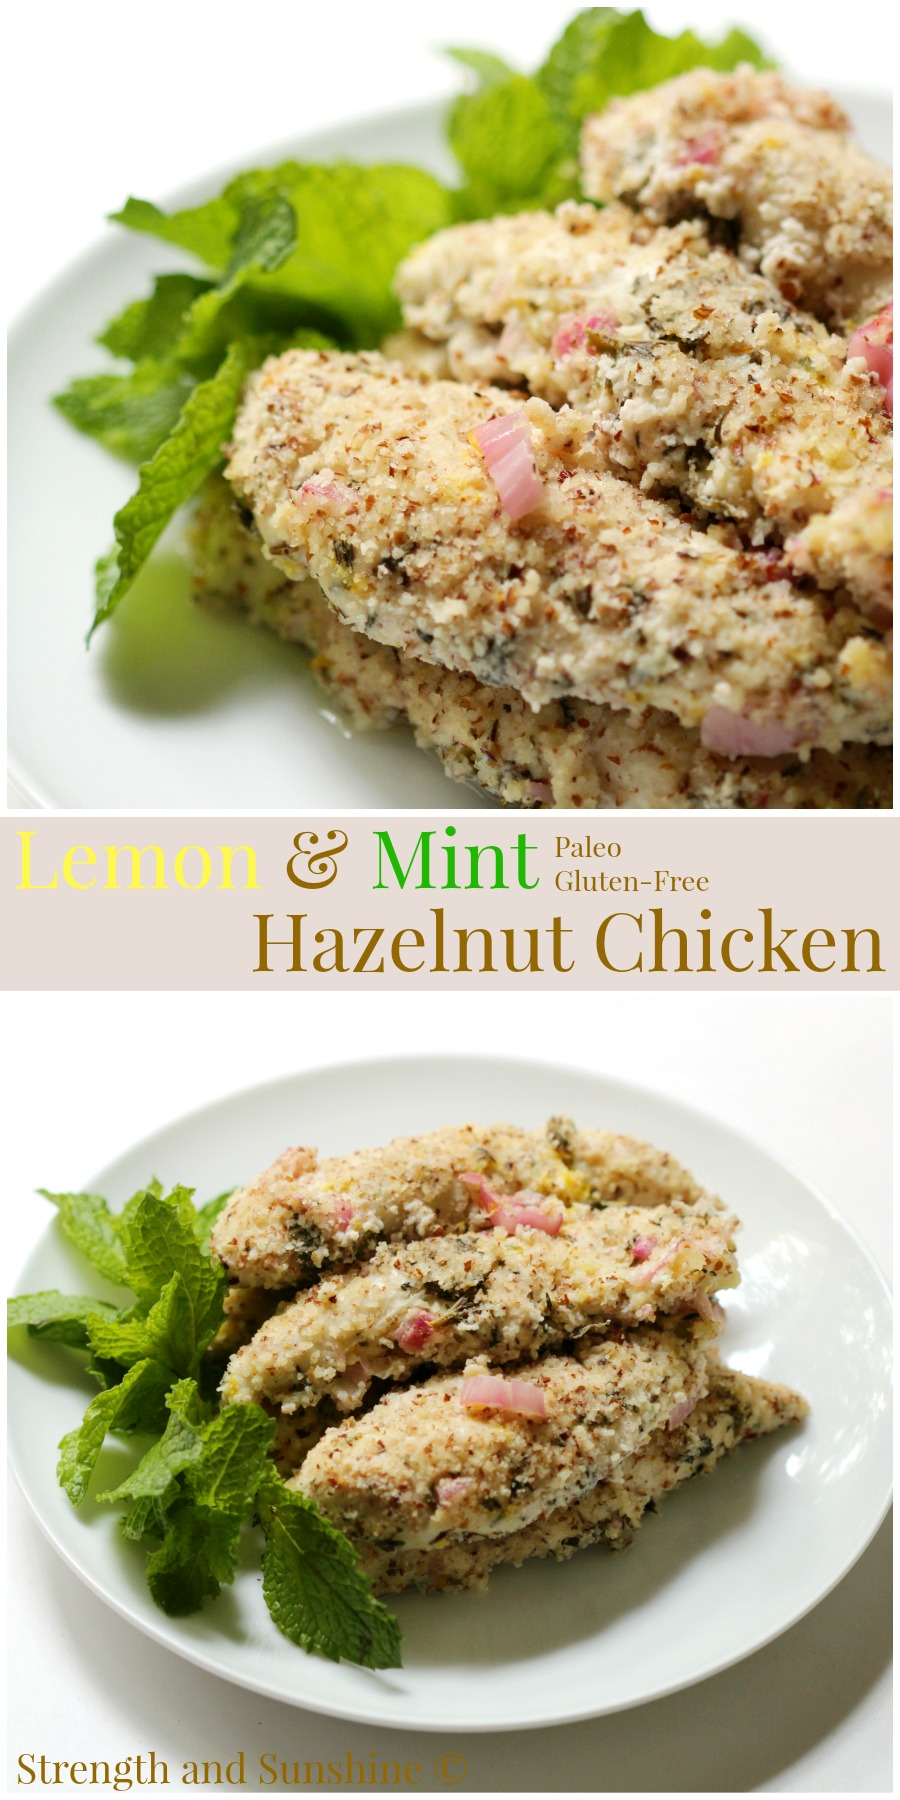 Lemon & Mint Hazelnut Chicken | Strength and Sunshine @RebeccaGF666 The bright flavors and aromas of lemon and mint come together with hazelnut chicken to bring you a healthy and delicious dinner recipe. Paleo and gluten-free, this chicken is not lacking in flavor and so easy to prepare!